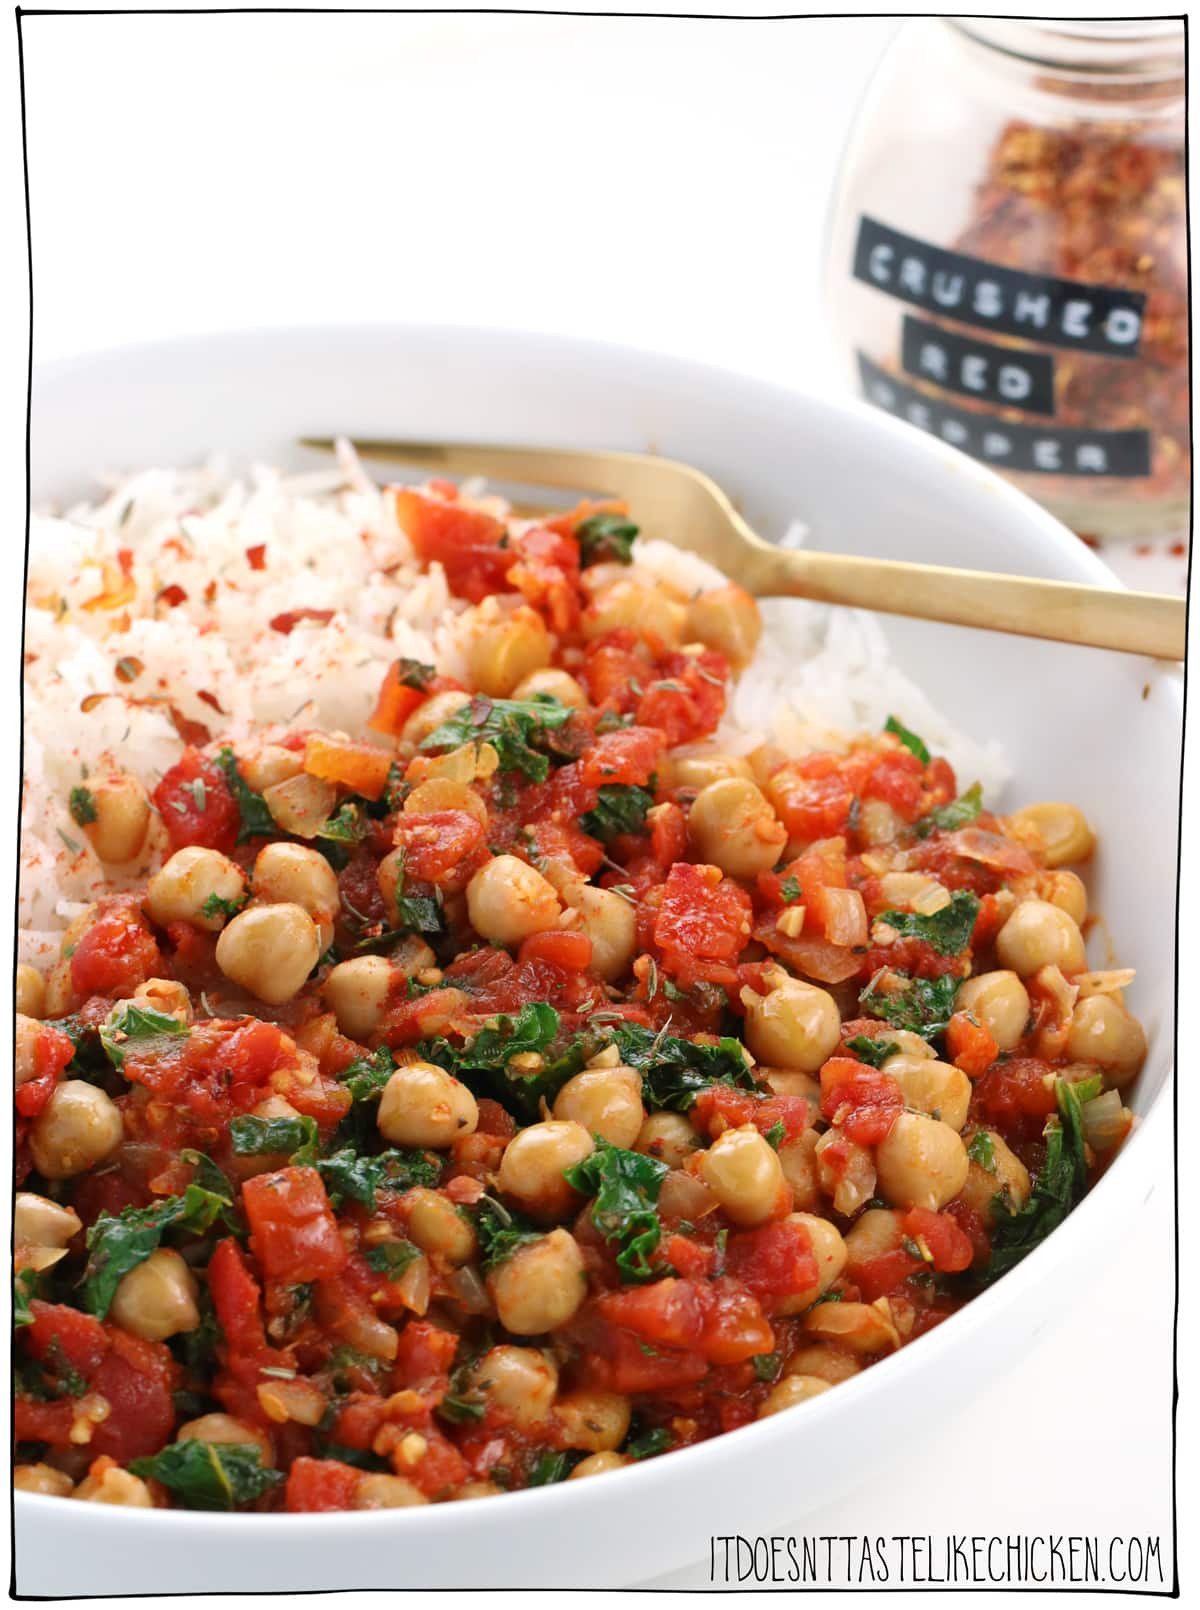 Smoky Spicy Chickpea Stew! Super quick and easy to make, but don't be fooled by the simplicity of this recipe, it's bursting with complex flavours. It gets even better the next day so it's a perfect make-ahead meal. #itdoesnttastelikechicken #veganrecipes #pantryrecipe